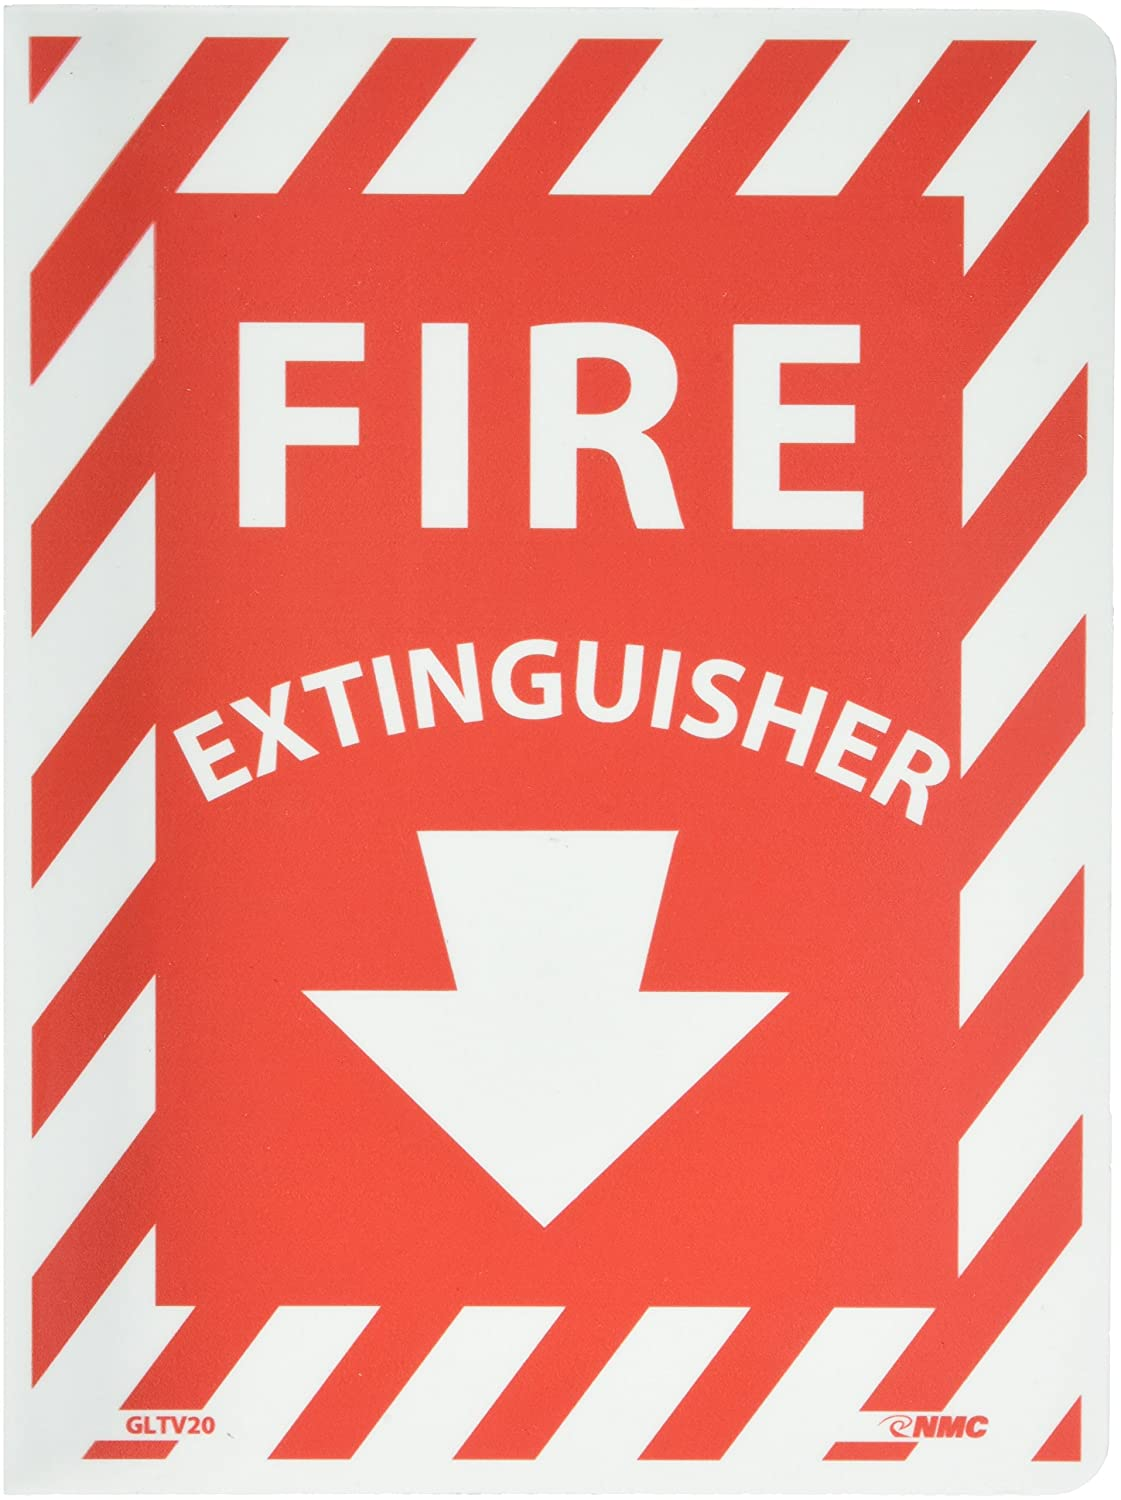 NMC GLTV20 Fire Sign 9 Length x 12 Height Legend FIRE EXTINGUISHER with Down Arrow Graphic Glow Rigid Red on White